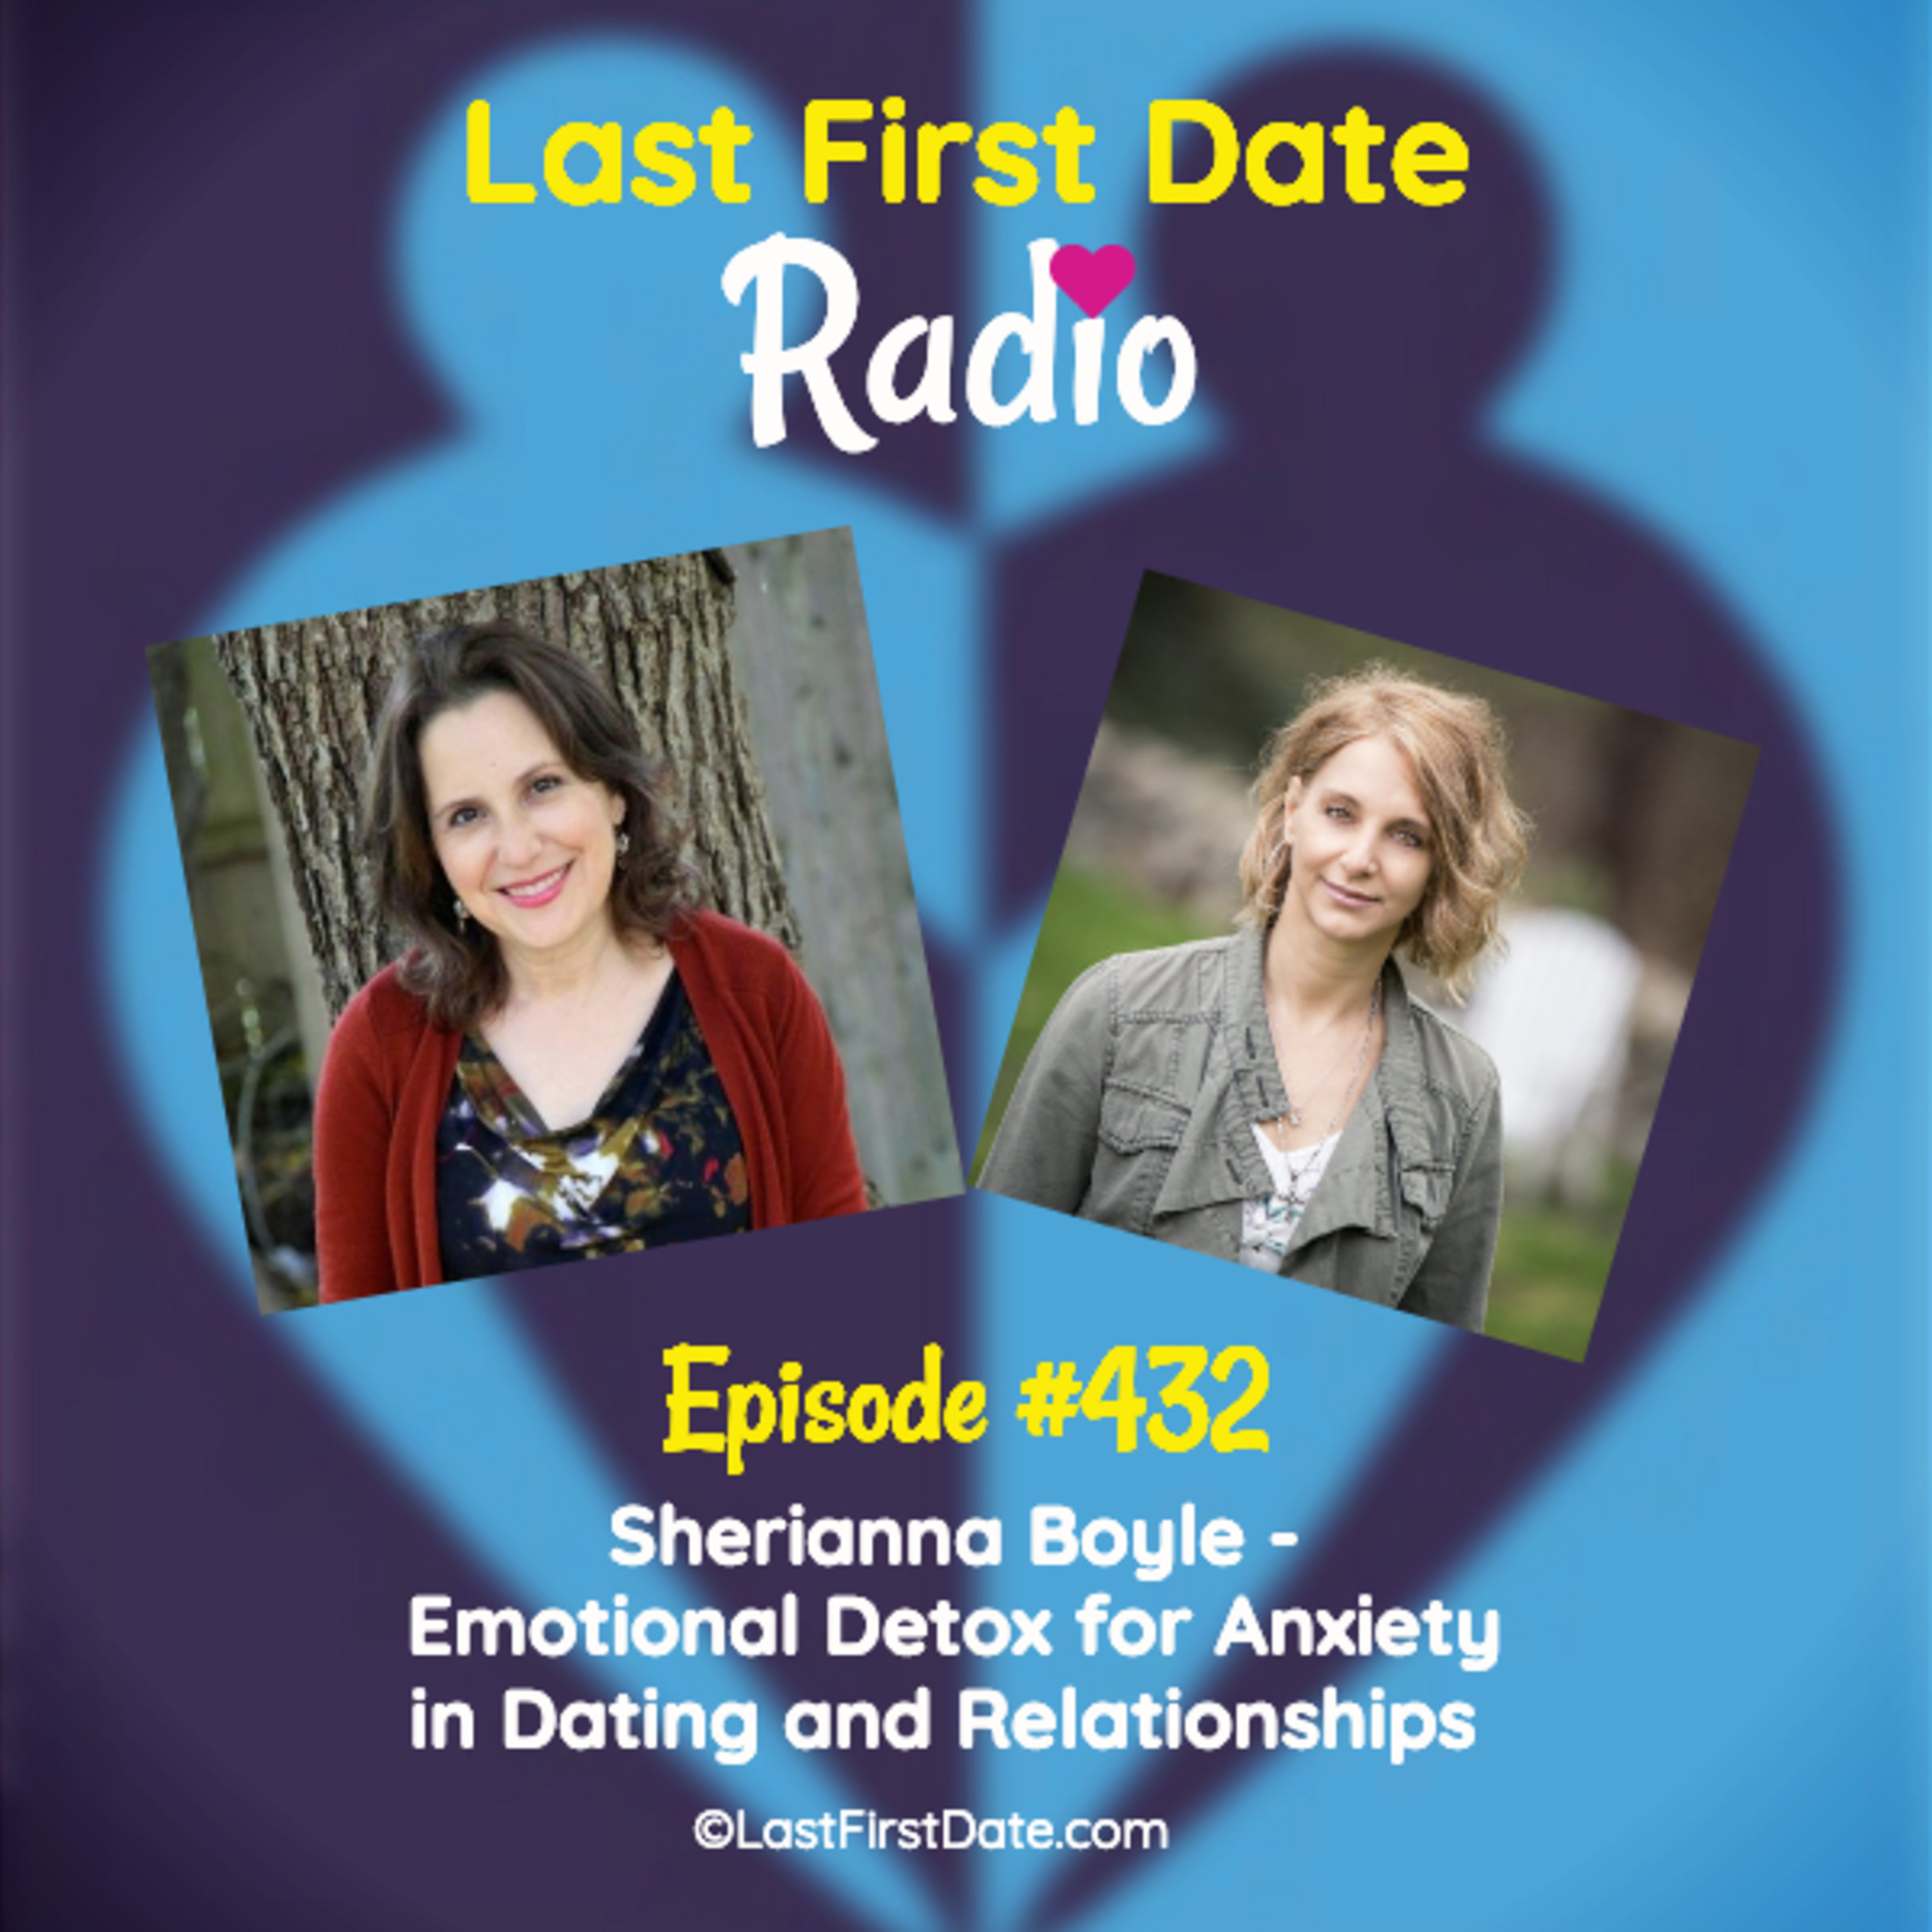 Last First Date Radio - EP 432: Sherianna Boyle - Emotional Detox for Anxiety in Dating and Relationships